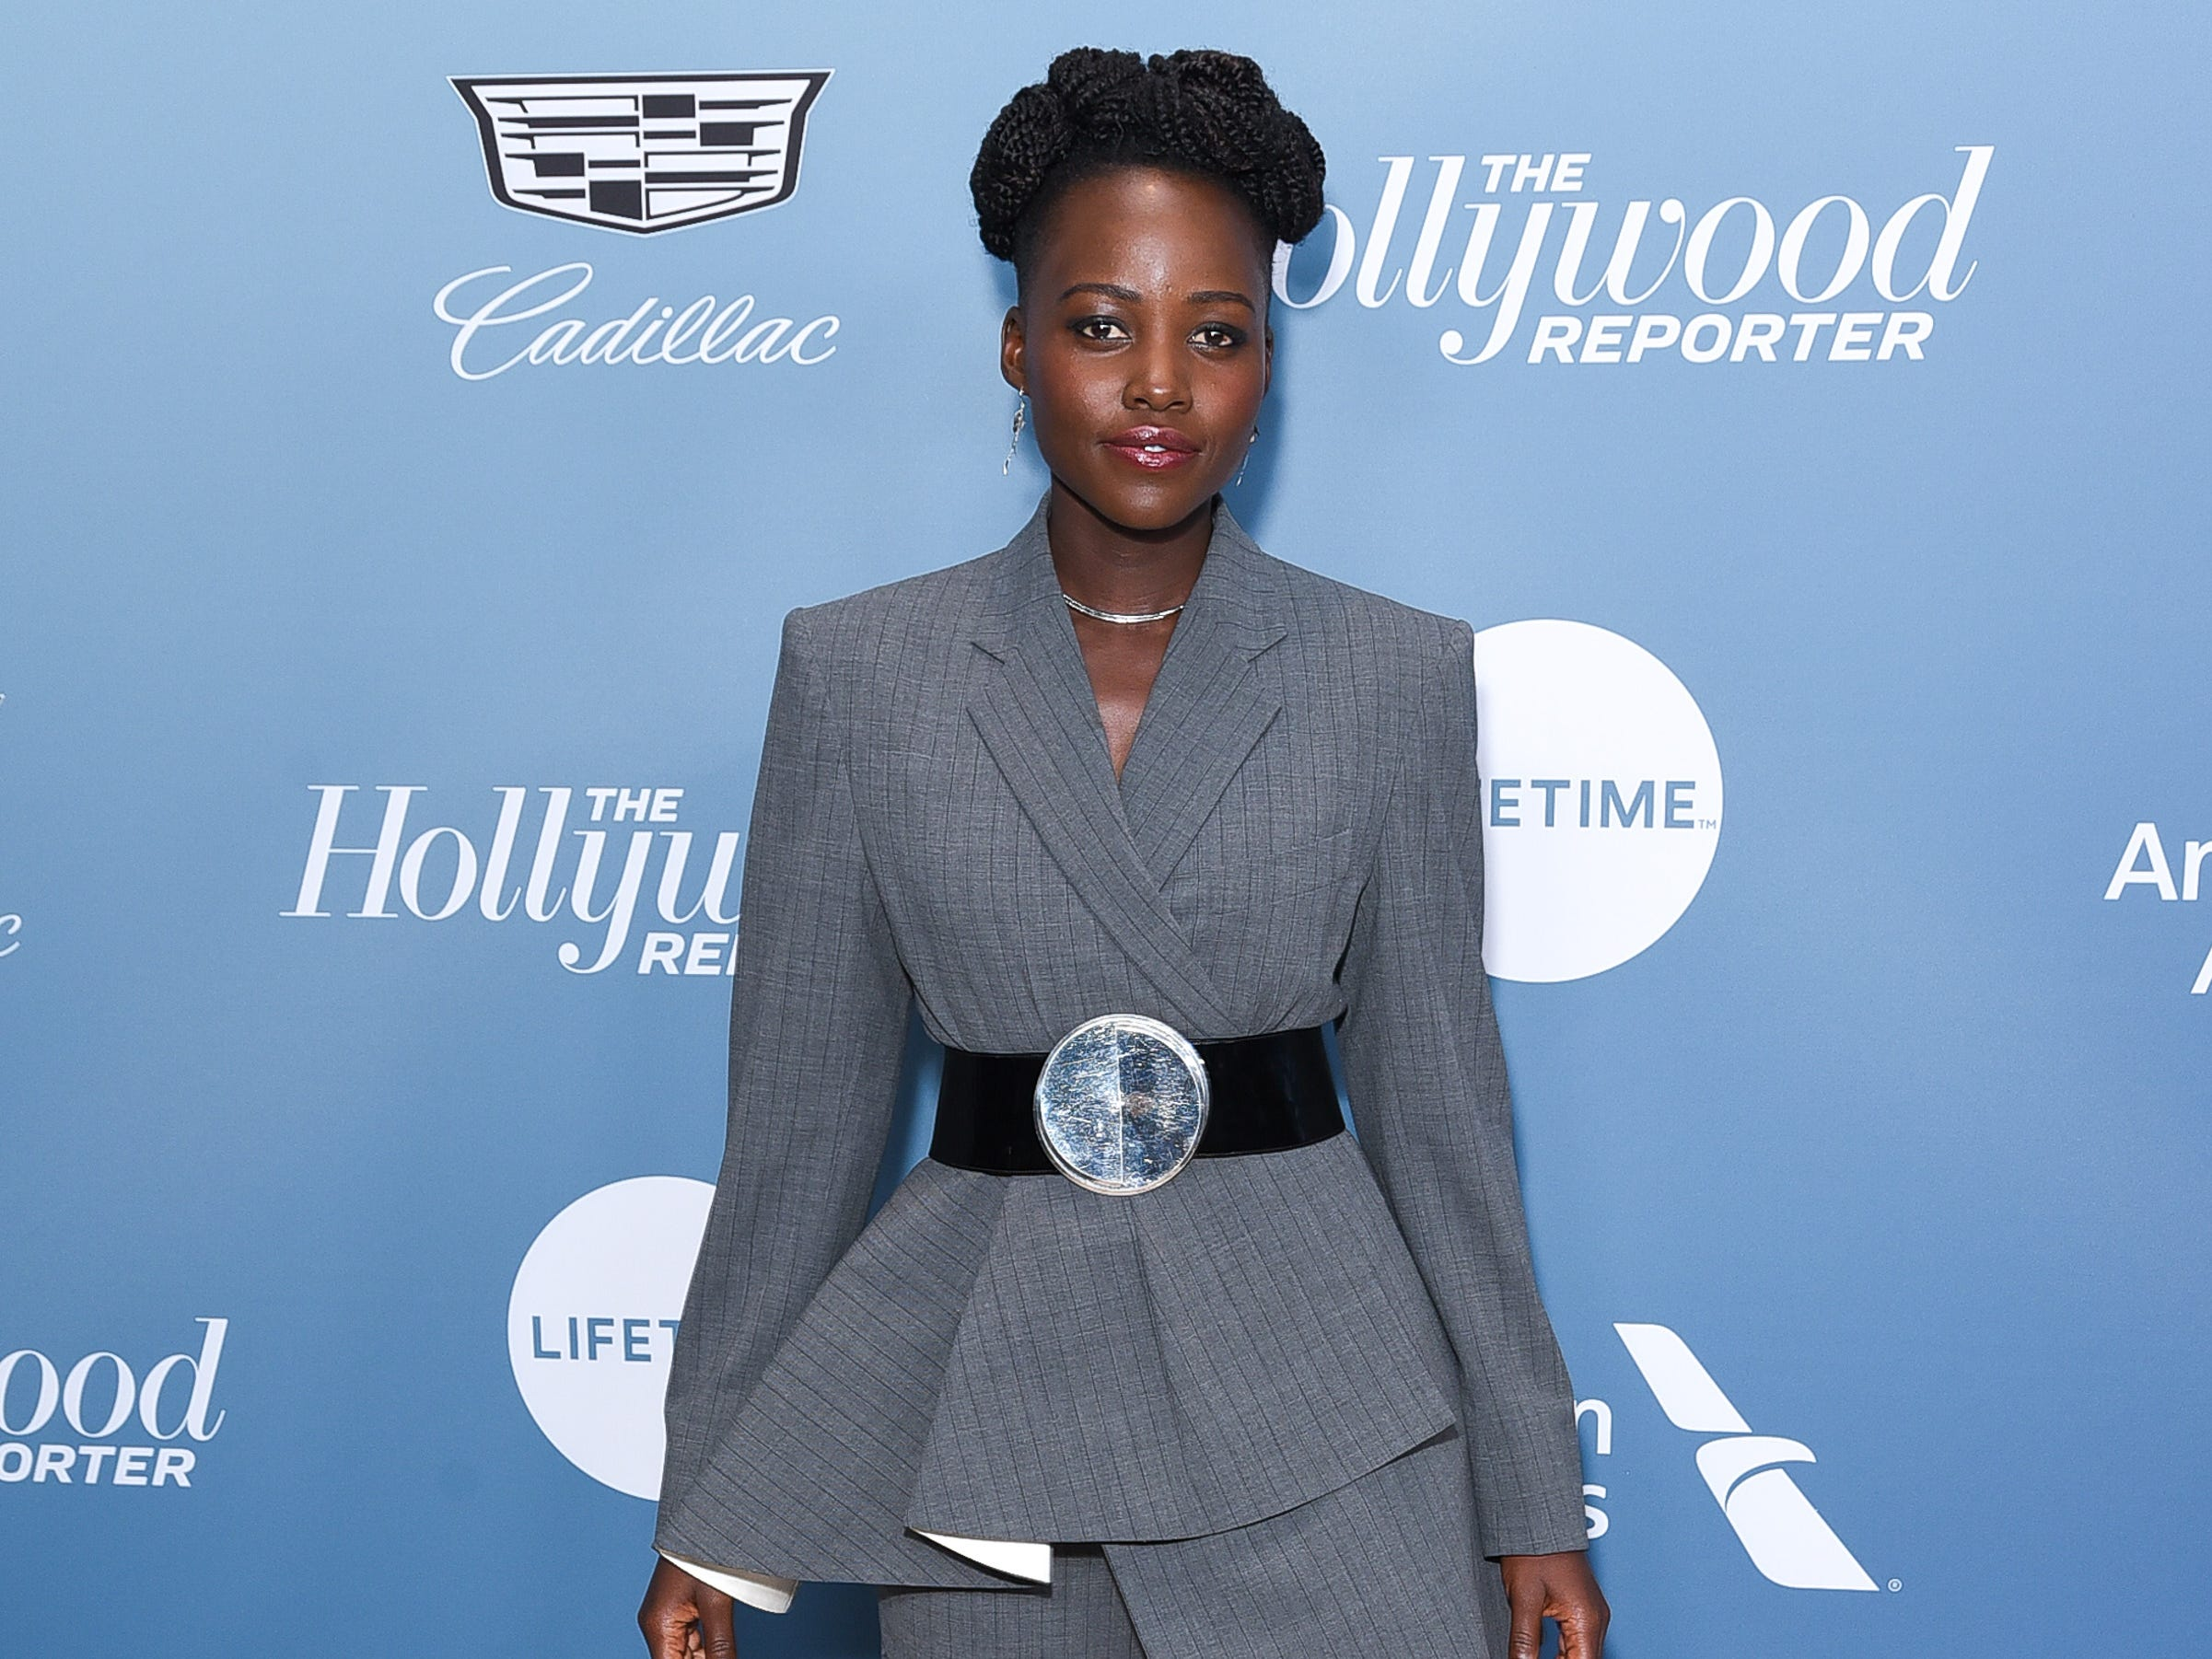 LOS ANGELES, CALIFORNIA - DECEMBER 05: Lupita Nyong'o attends The Hollywood Reporter's Power 100 Women In Entertainment at Milk Studios on December 05, 2018 in Los Angeles, California. (Photo by Presley Ann/Getty Images) ORG XMIT: 775264723 ORIG FILE ID: 1077818216